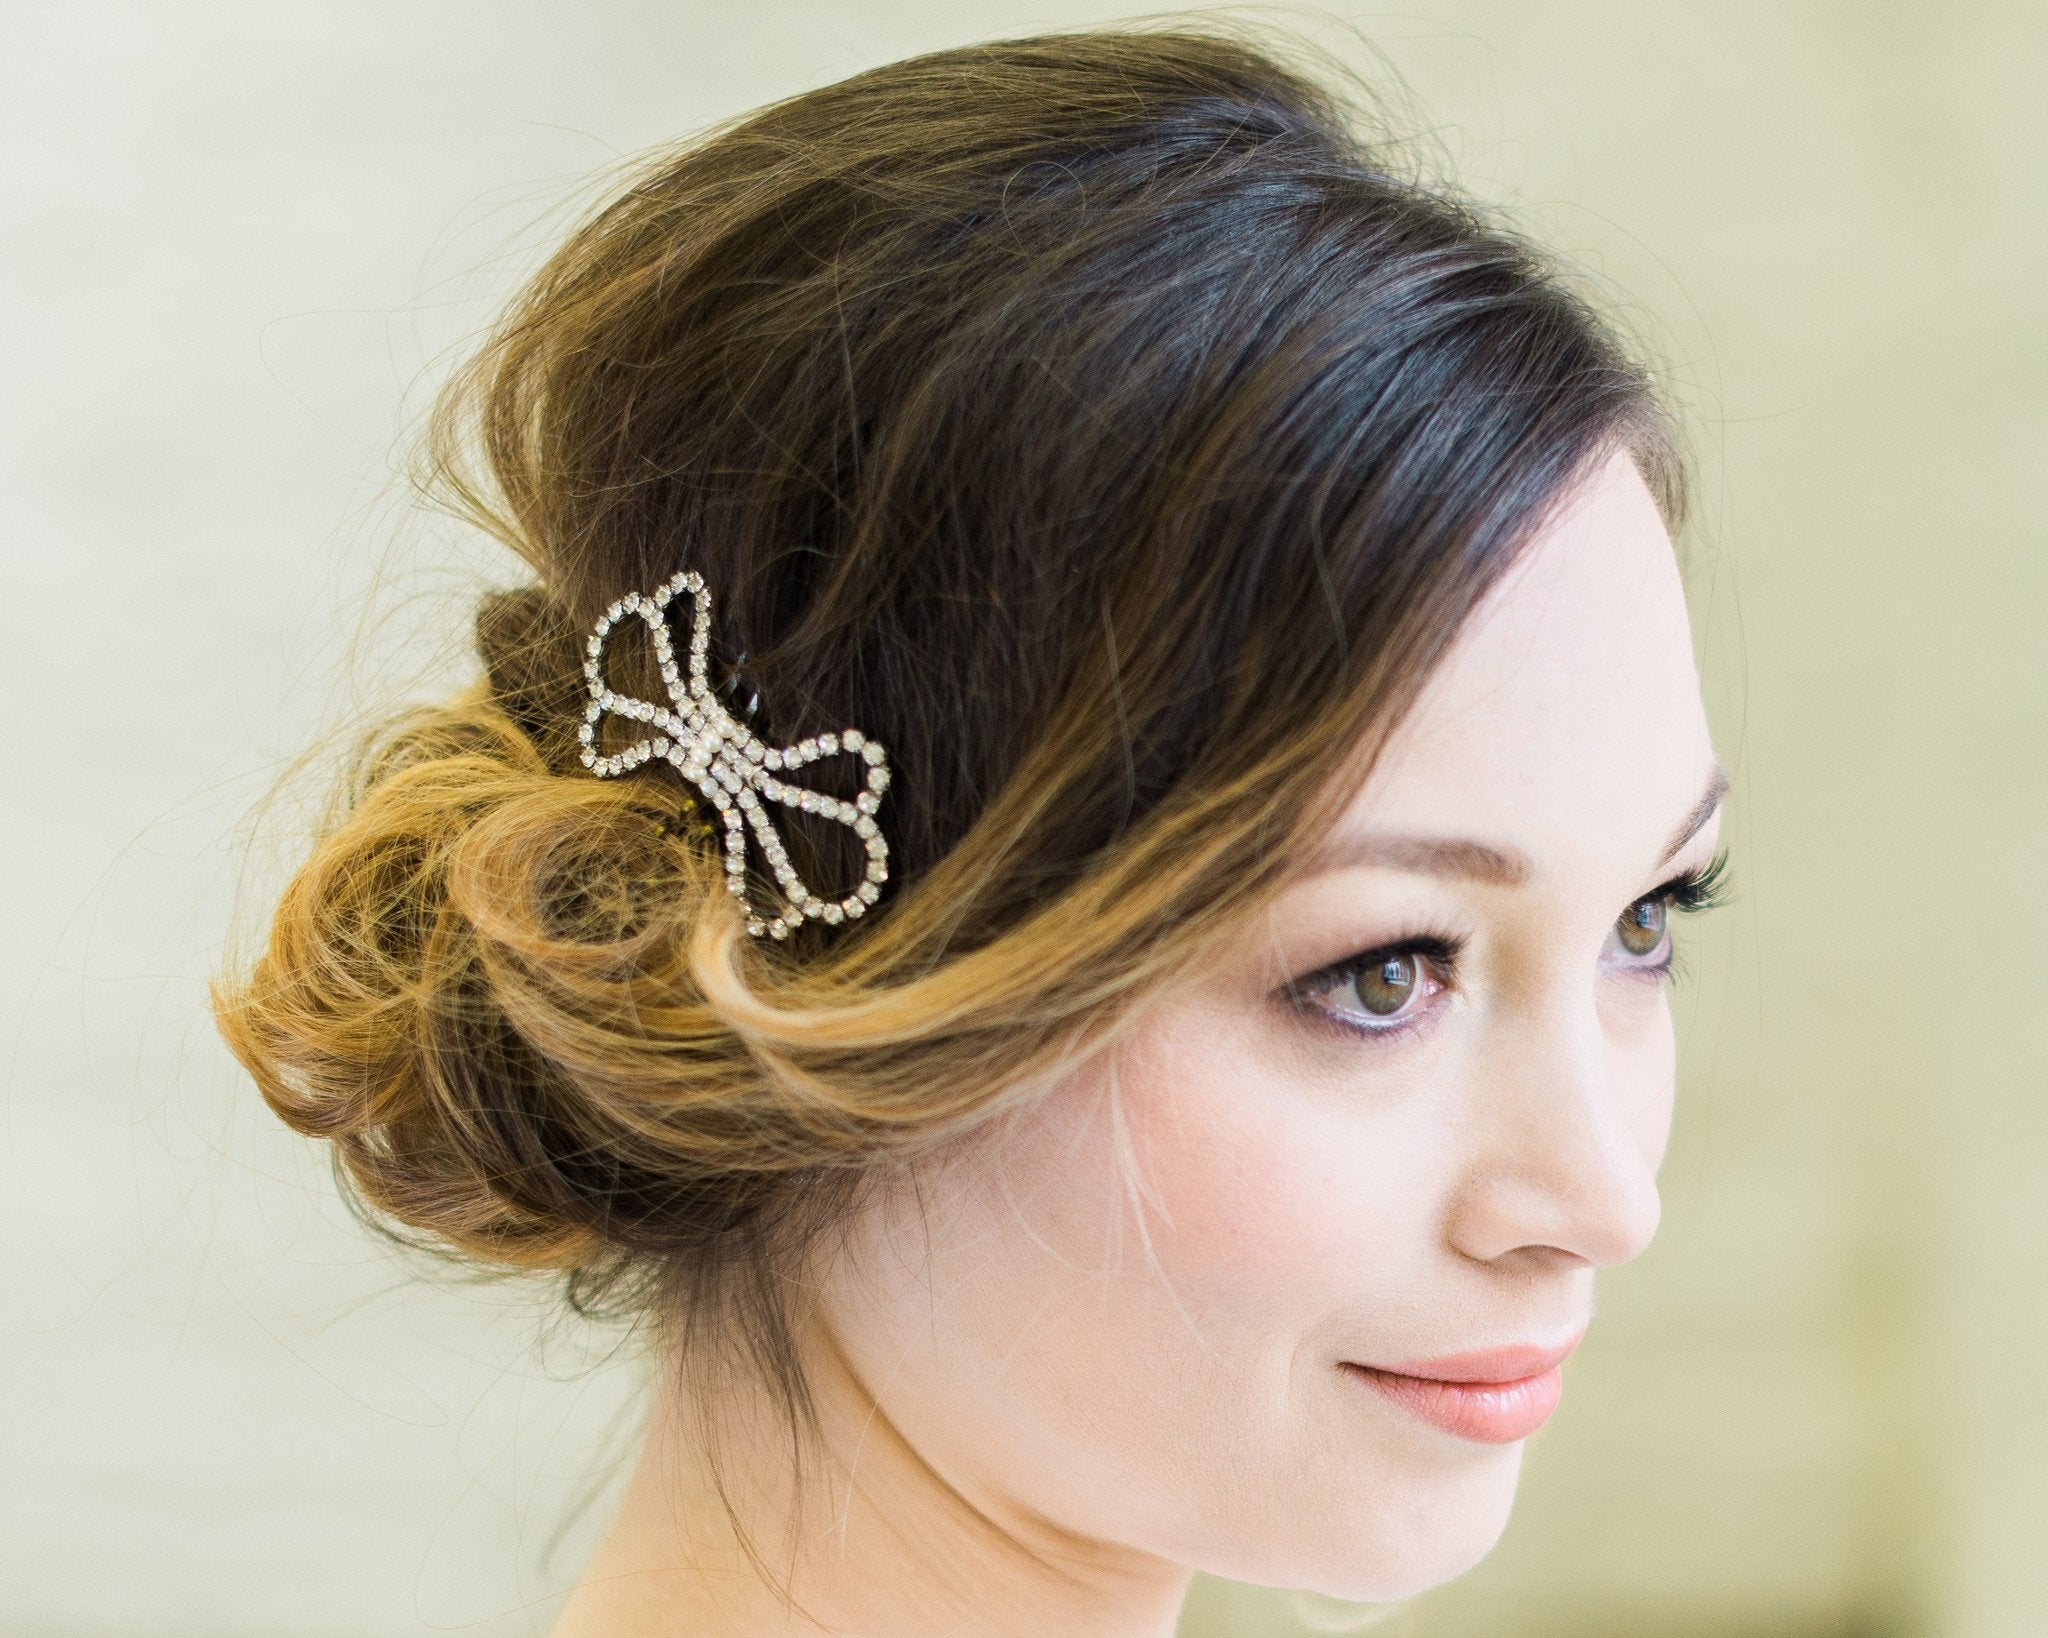 Vintage Inspired Style Wedding Comb, Bow